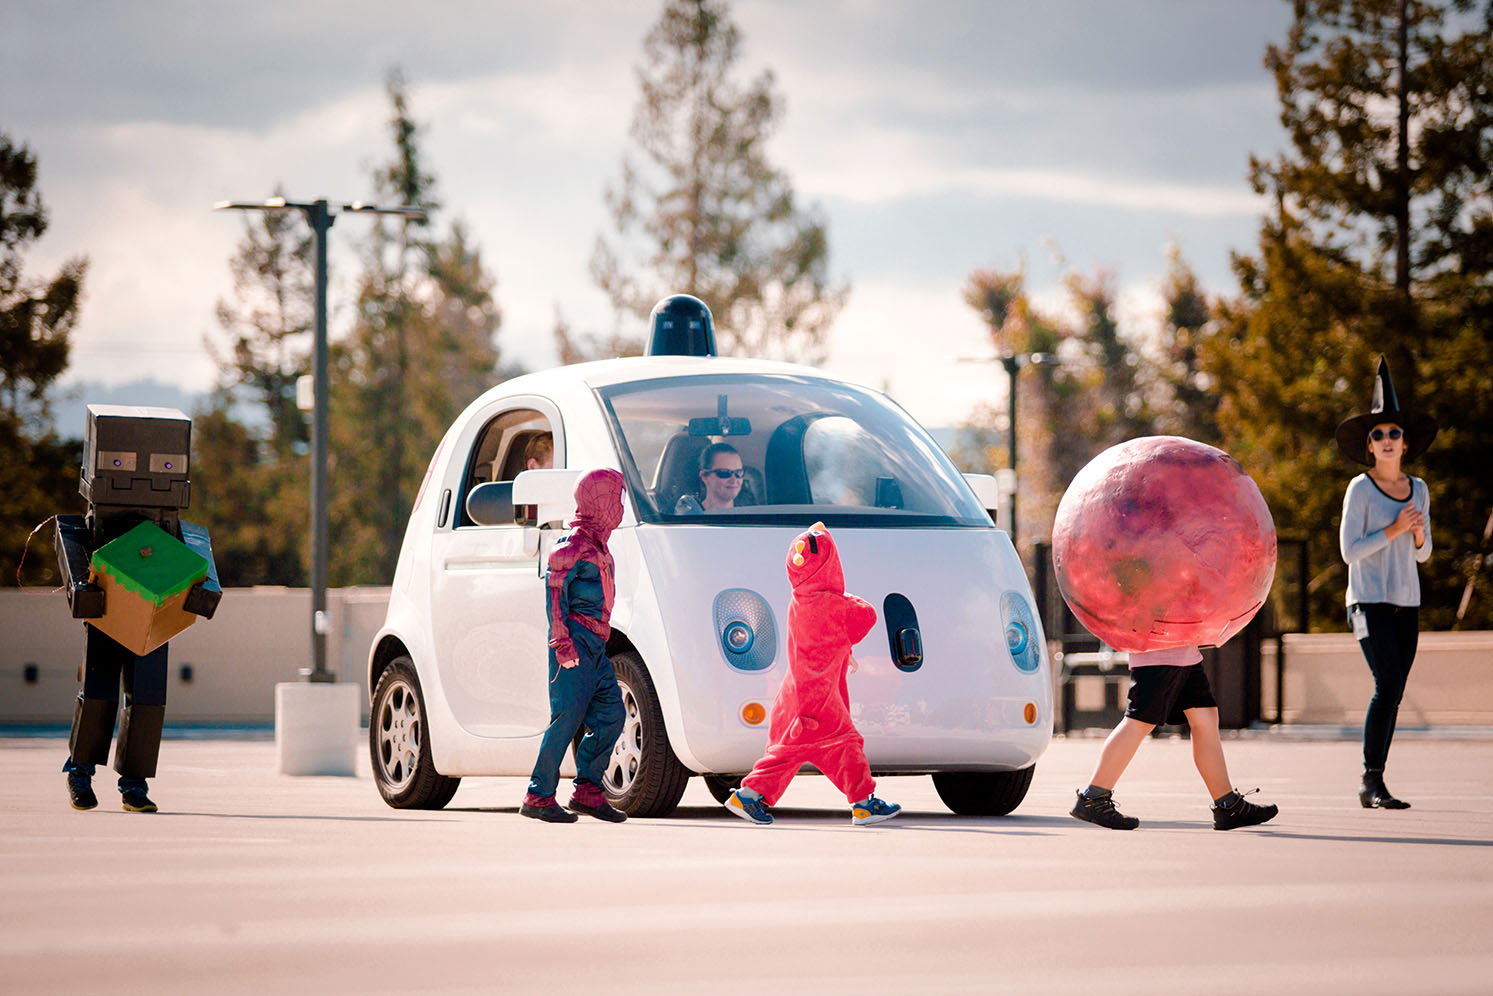 Google's self-driving car project has a history of focusing on safety around kids. In October, the company taught its cars to be careful around children even when they're dressed in costumes.